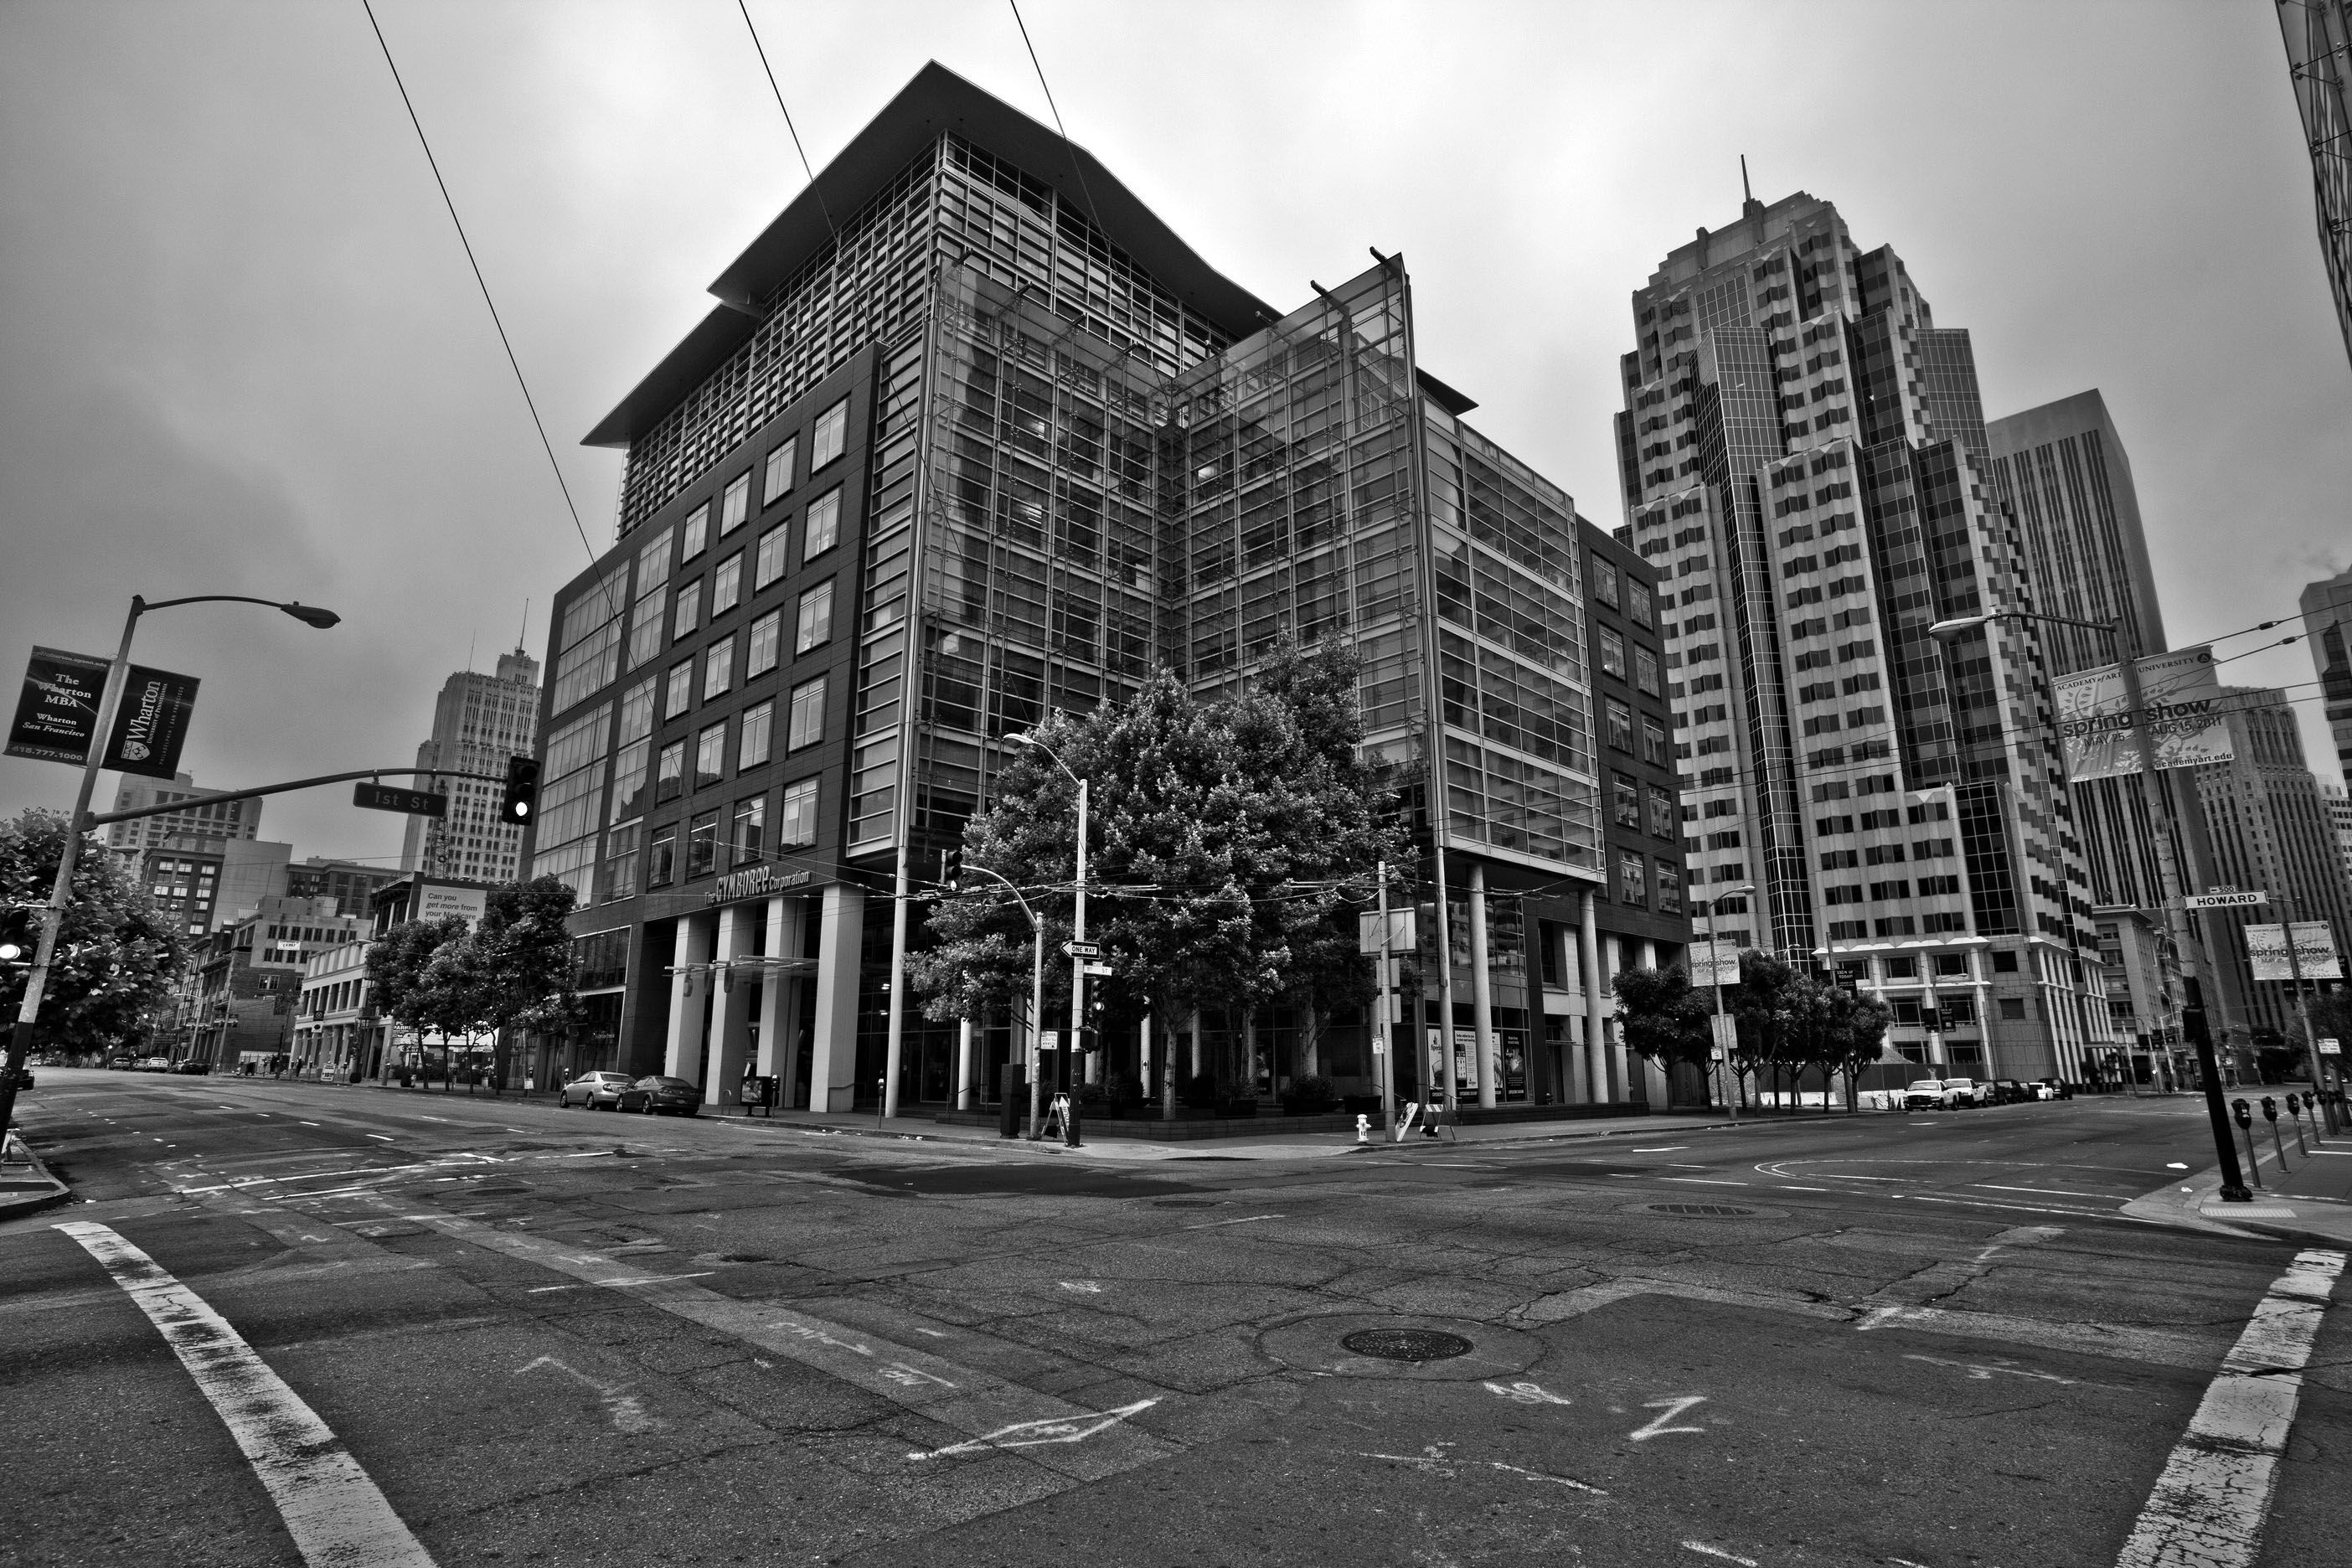 Architecture The Gymboree Corp cnr Howard and 1st St San Francisco CA July 2011 02